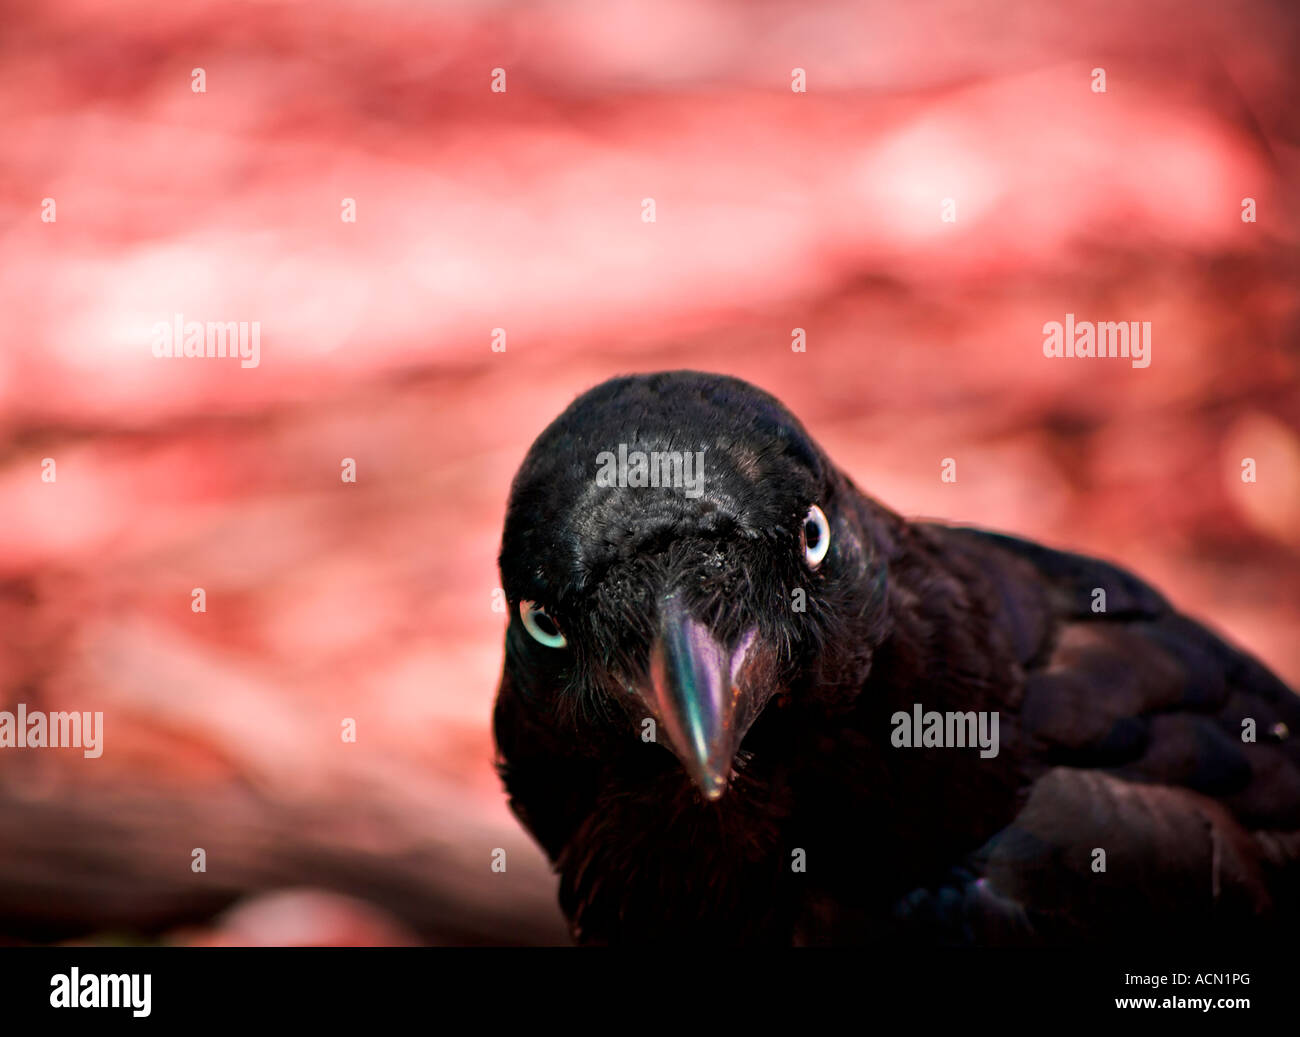 a evil looking crow australian raven looks enquiringly into the camera with a hellish background in red - Stock Image